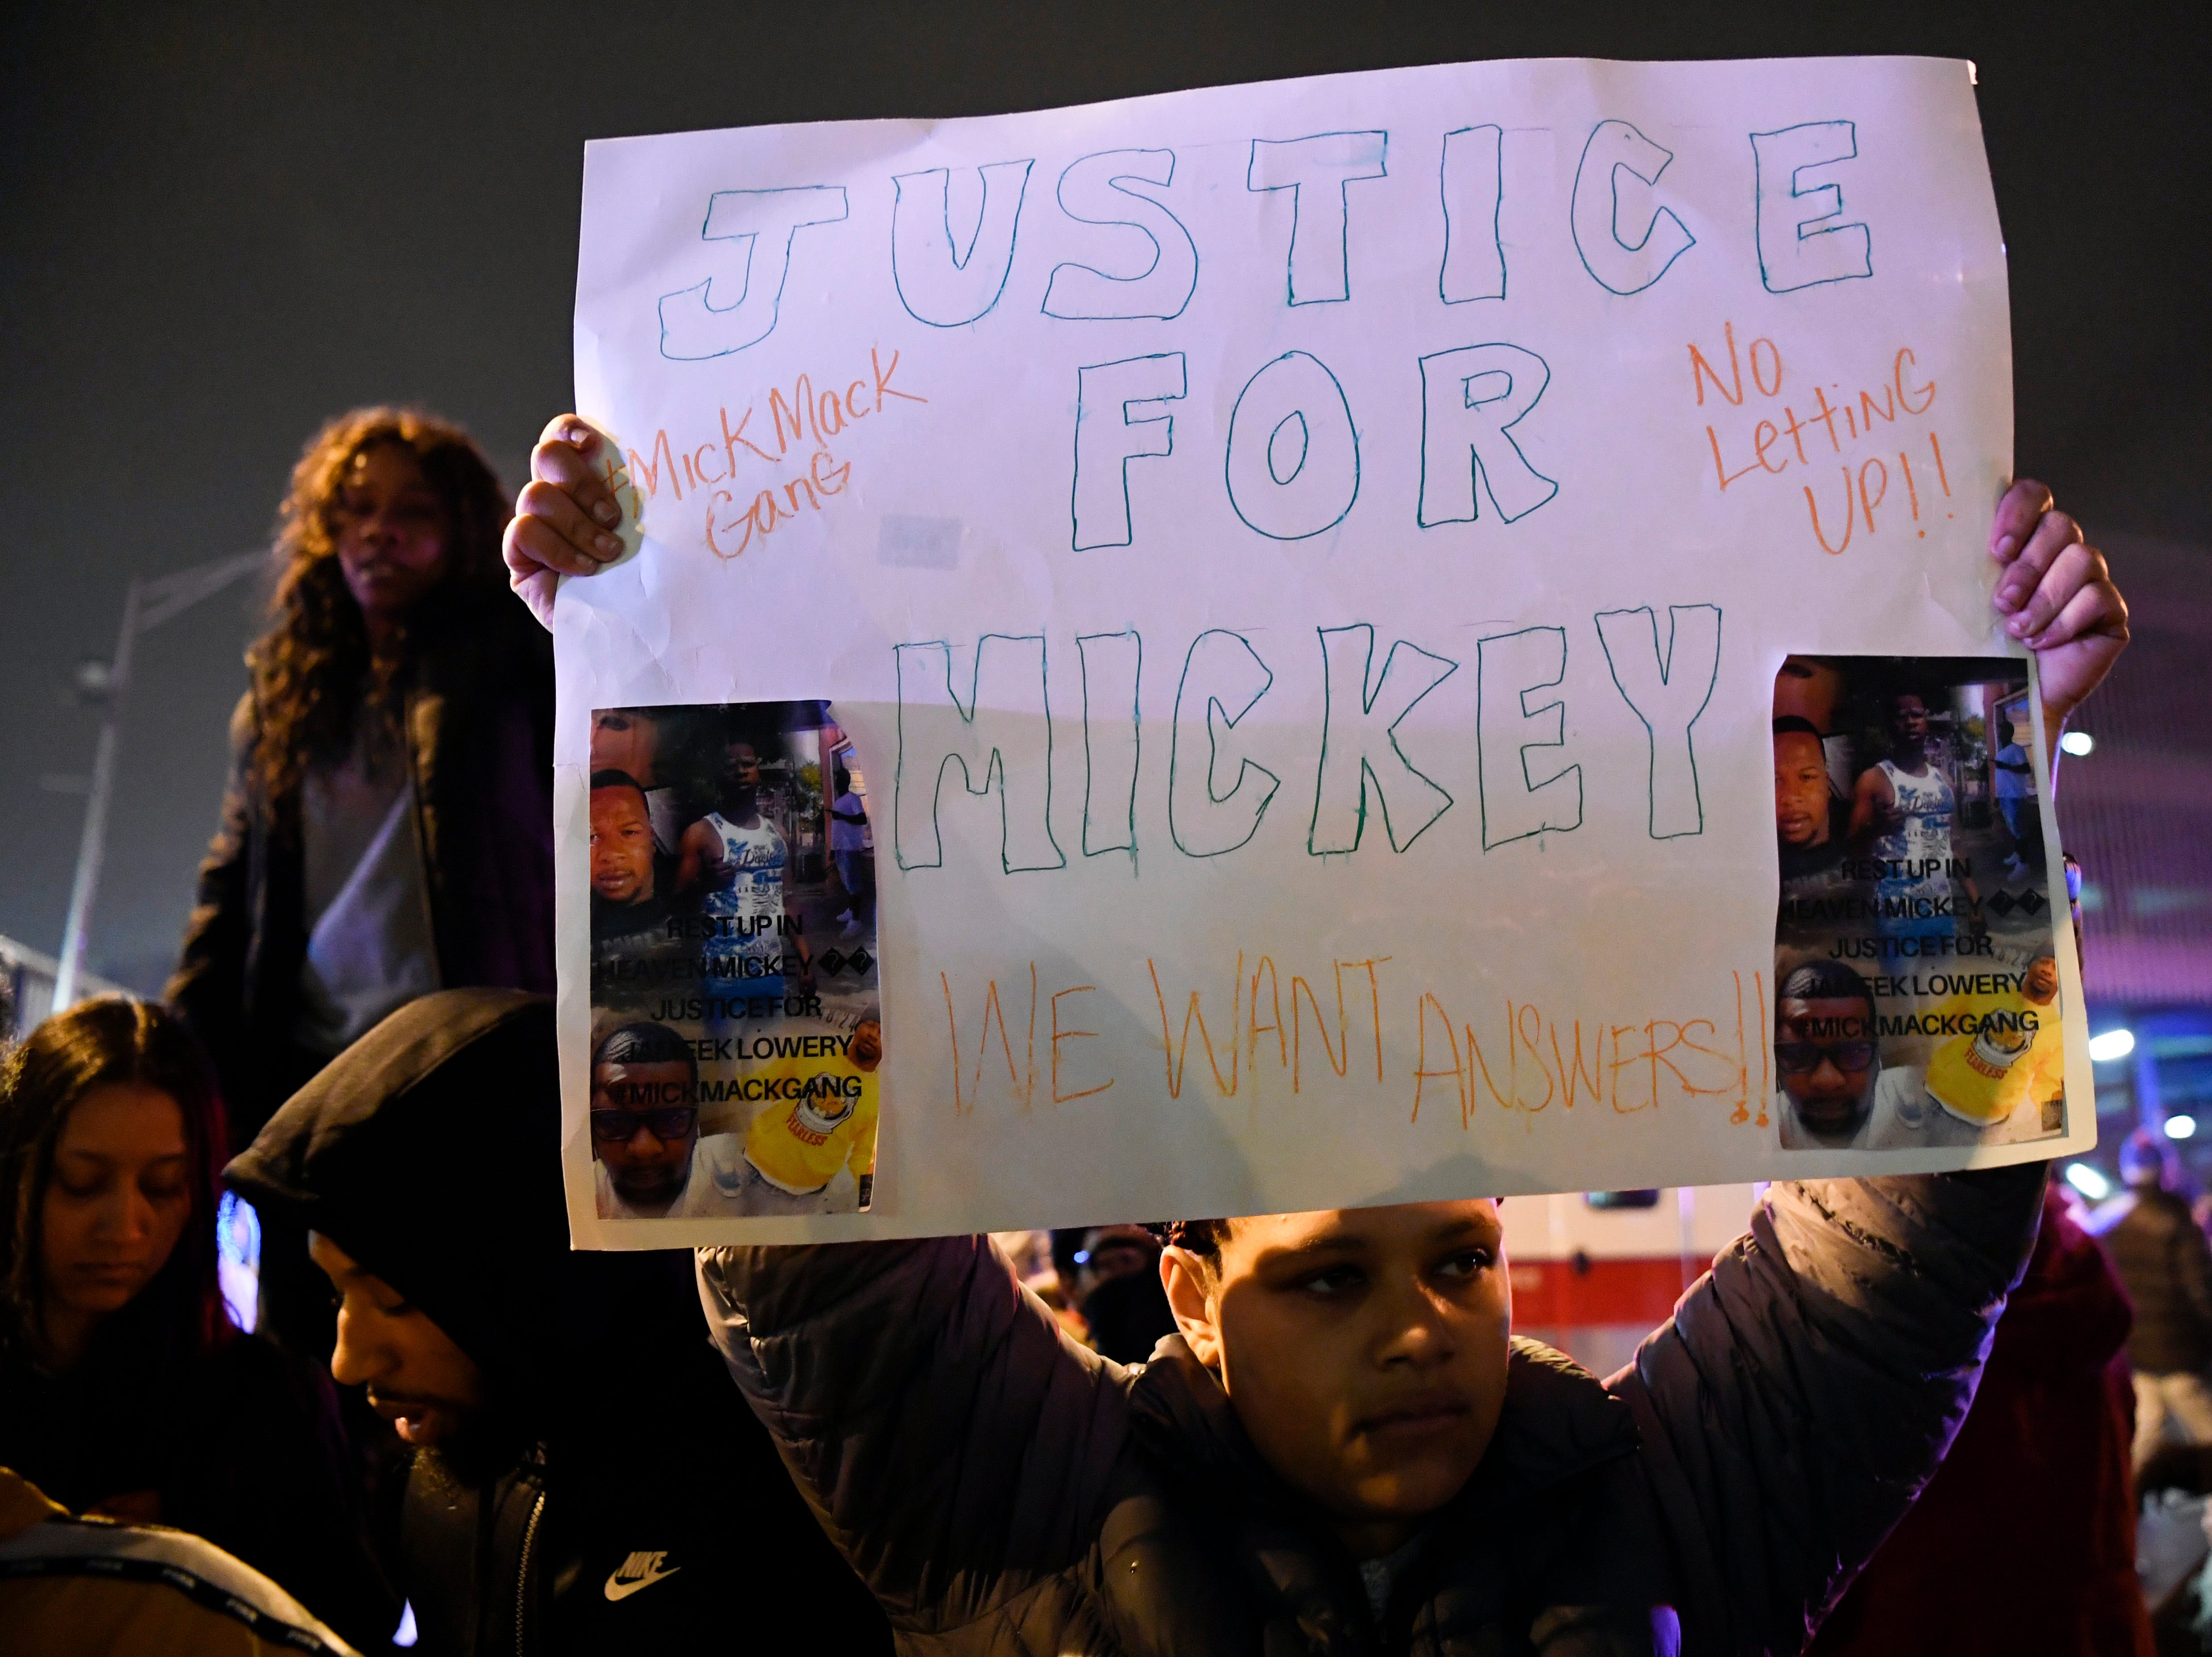 A woman holds a sign for Jameek Lowery during a rally on Tuesday, Jan. 8, 2019, in Paterson. Lowery died two days after going on Facebook Live claiming that someone was out to kill him and asking the Paterson Police Department for help.